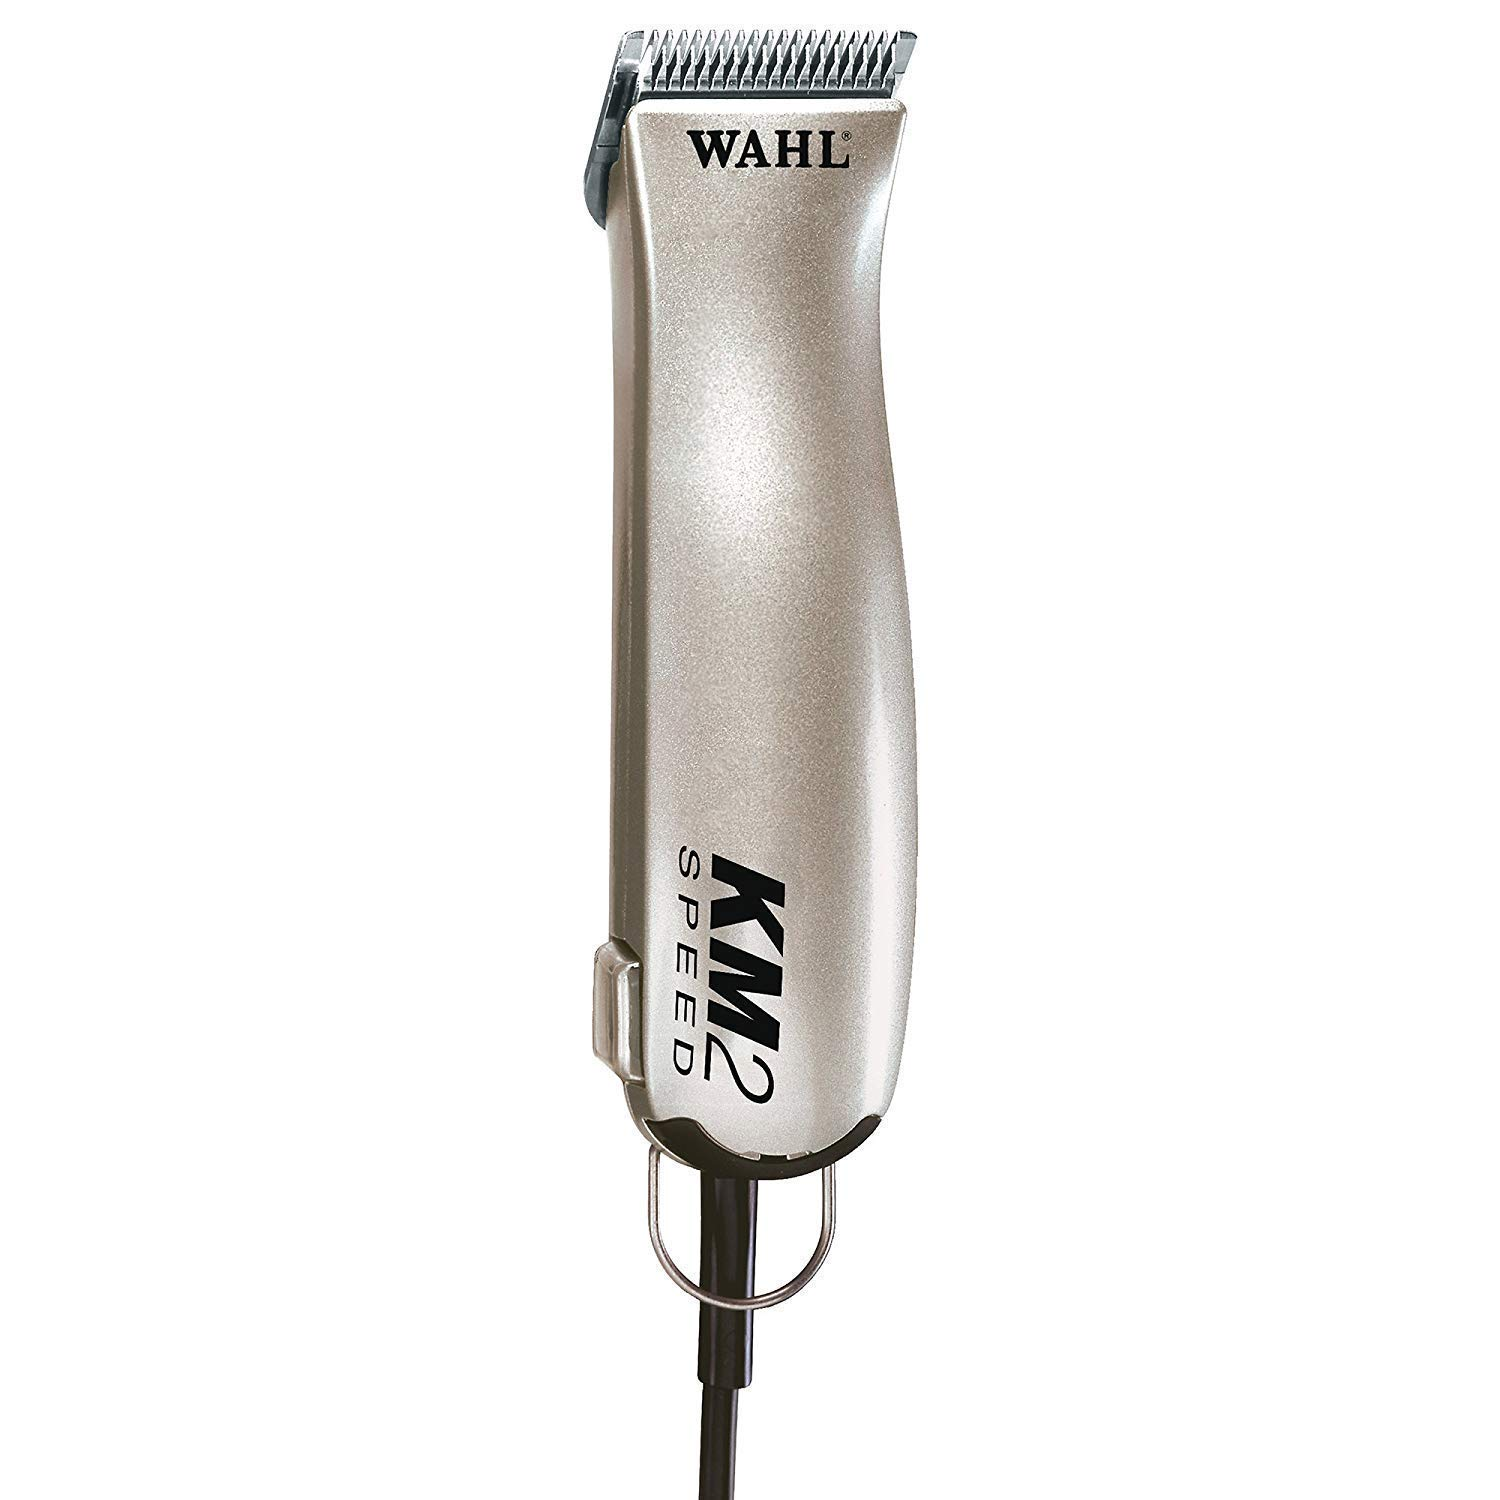 Wahl Professional Animal KM2 Deluxe Clipper Kit  9757-1001